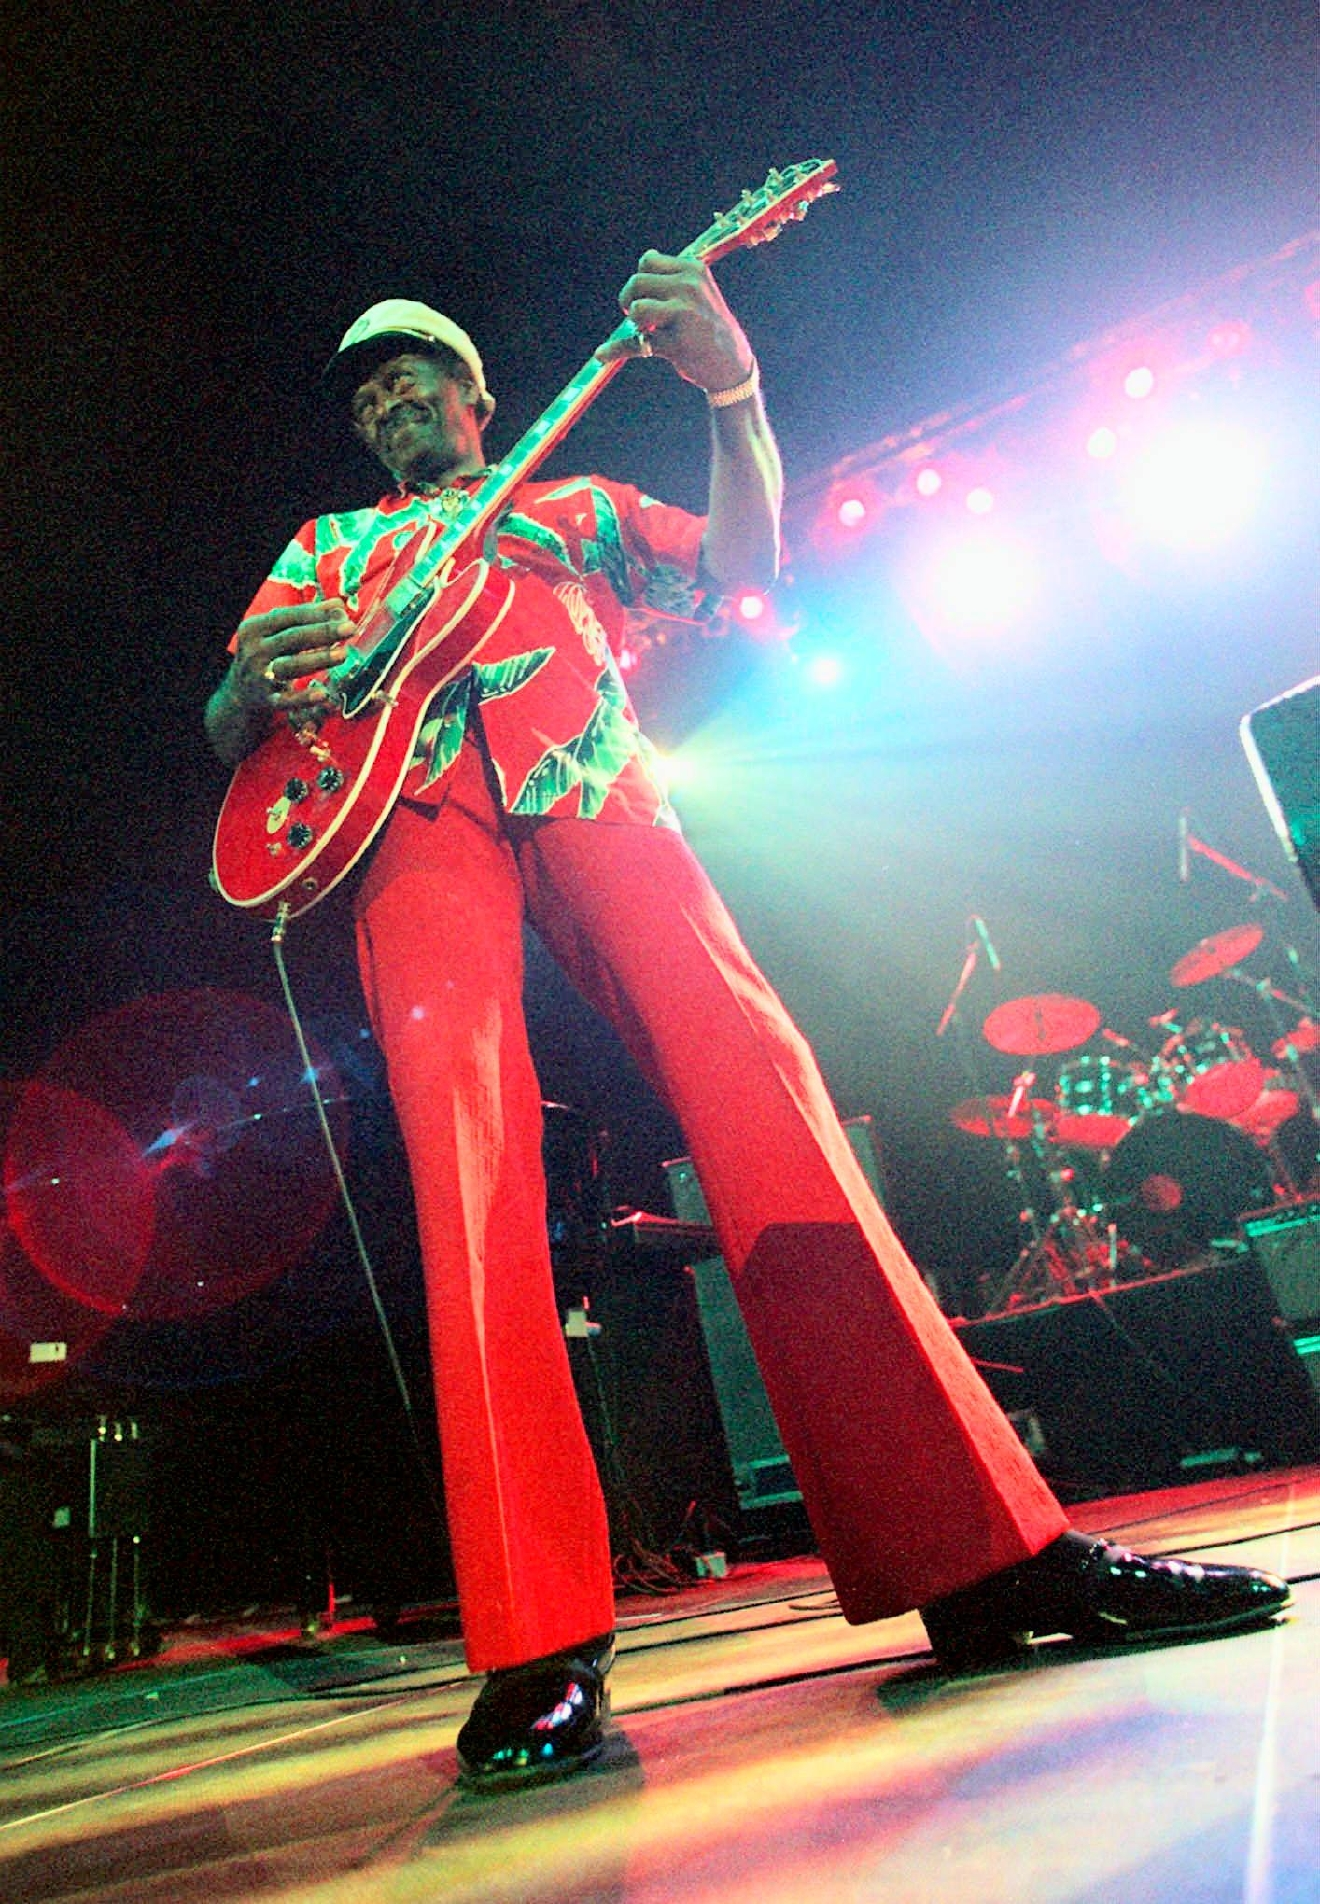 "FILE - In this Tuesday, July 28, 199 file photo, Chuck Berry performs during the ""Legends of Rock 'n' Roll"" at the Hallenstadion in Zurich, Switzerland. Berry headlined the show that also featured appearances by Little Richard and Jerry Lee Lewis. On Saturday, March 18, 2017, police in Missouri said Berry has died at the age of 90. (Michele Limina/Keystone via AP)"